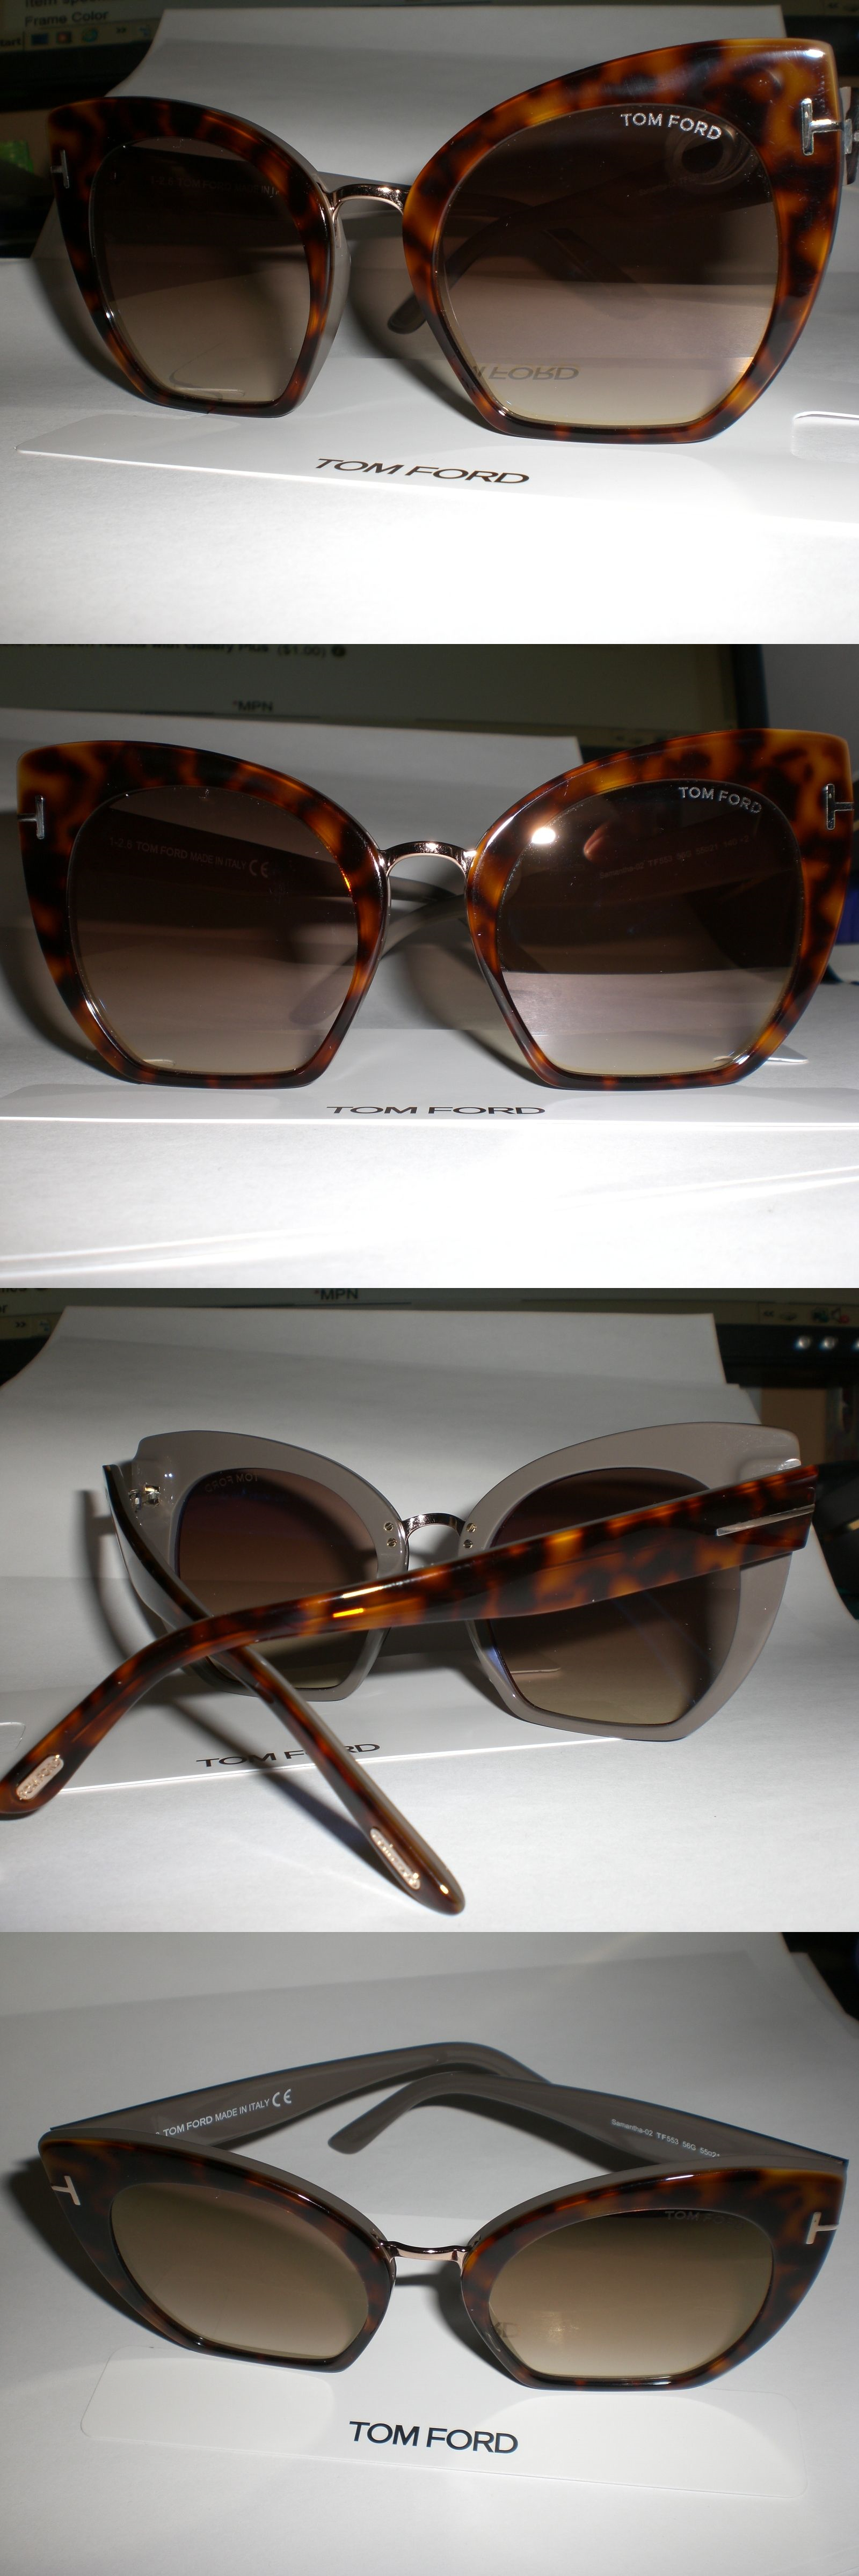 06536ba4c993a Fashion Eyewear Clear Glasses 179248  Tom Ford Samantha 02 Tf553 56G  Sunglasses